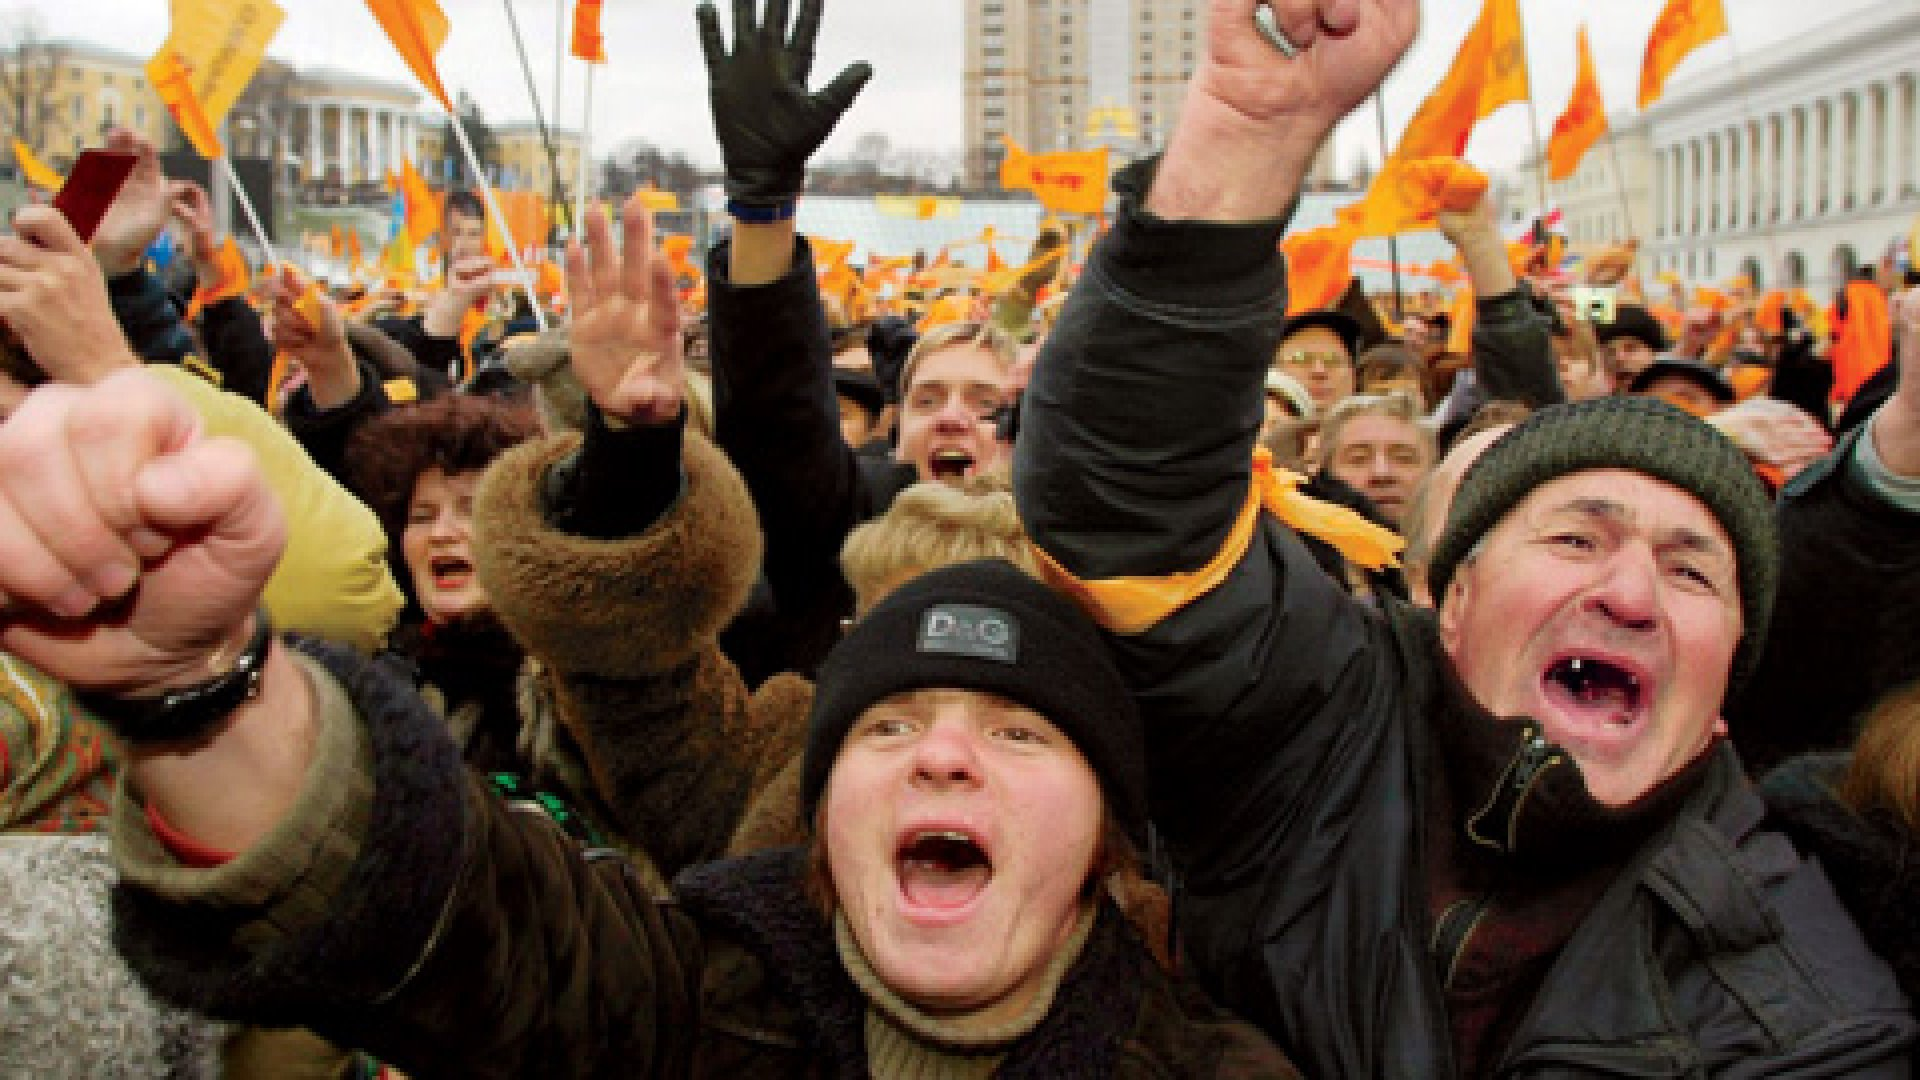 <strong>UKRAINE, 2004</strong> The Orange Revolution brought the country to a standstill. Not at all business as usual.